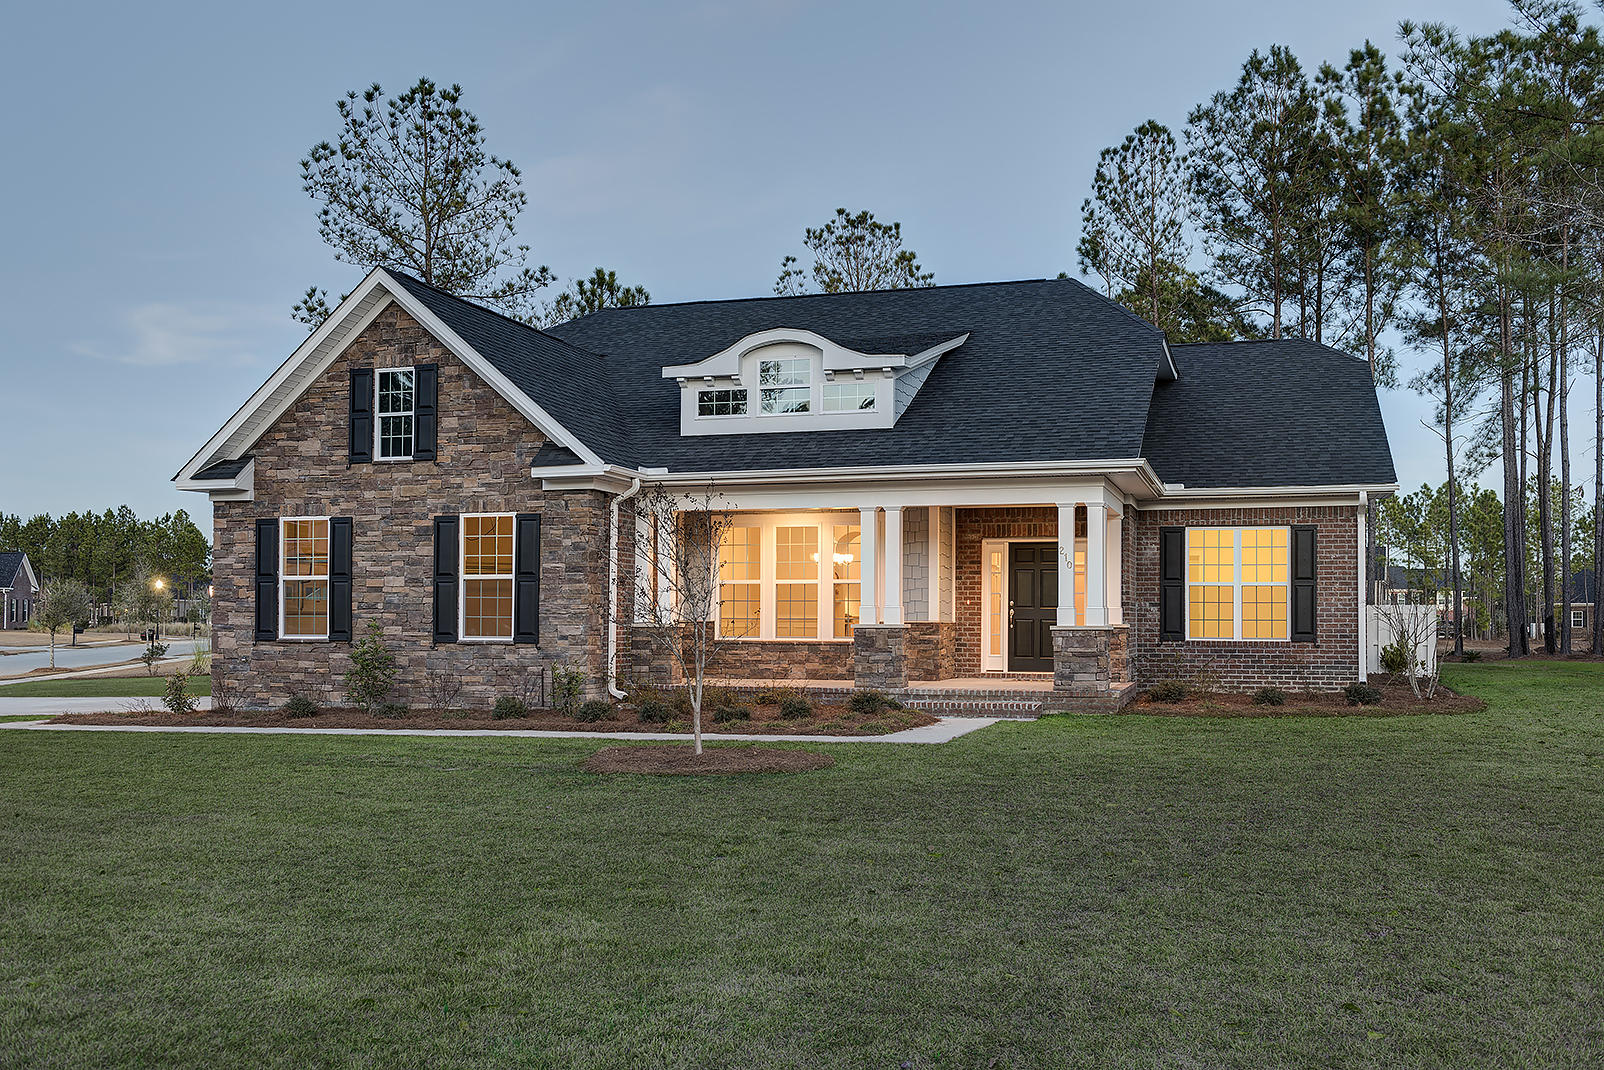 Heritage by Mungo Homes New Homes for Sale - Harvest, AL | Trulia